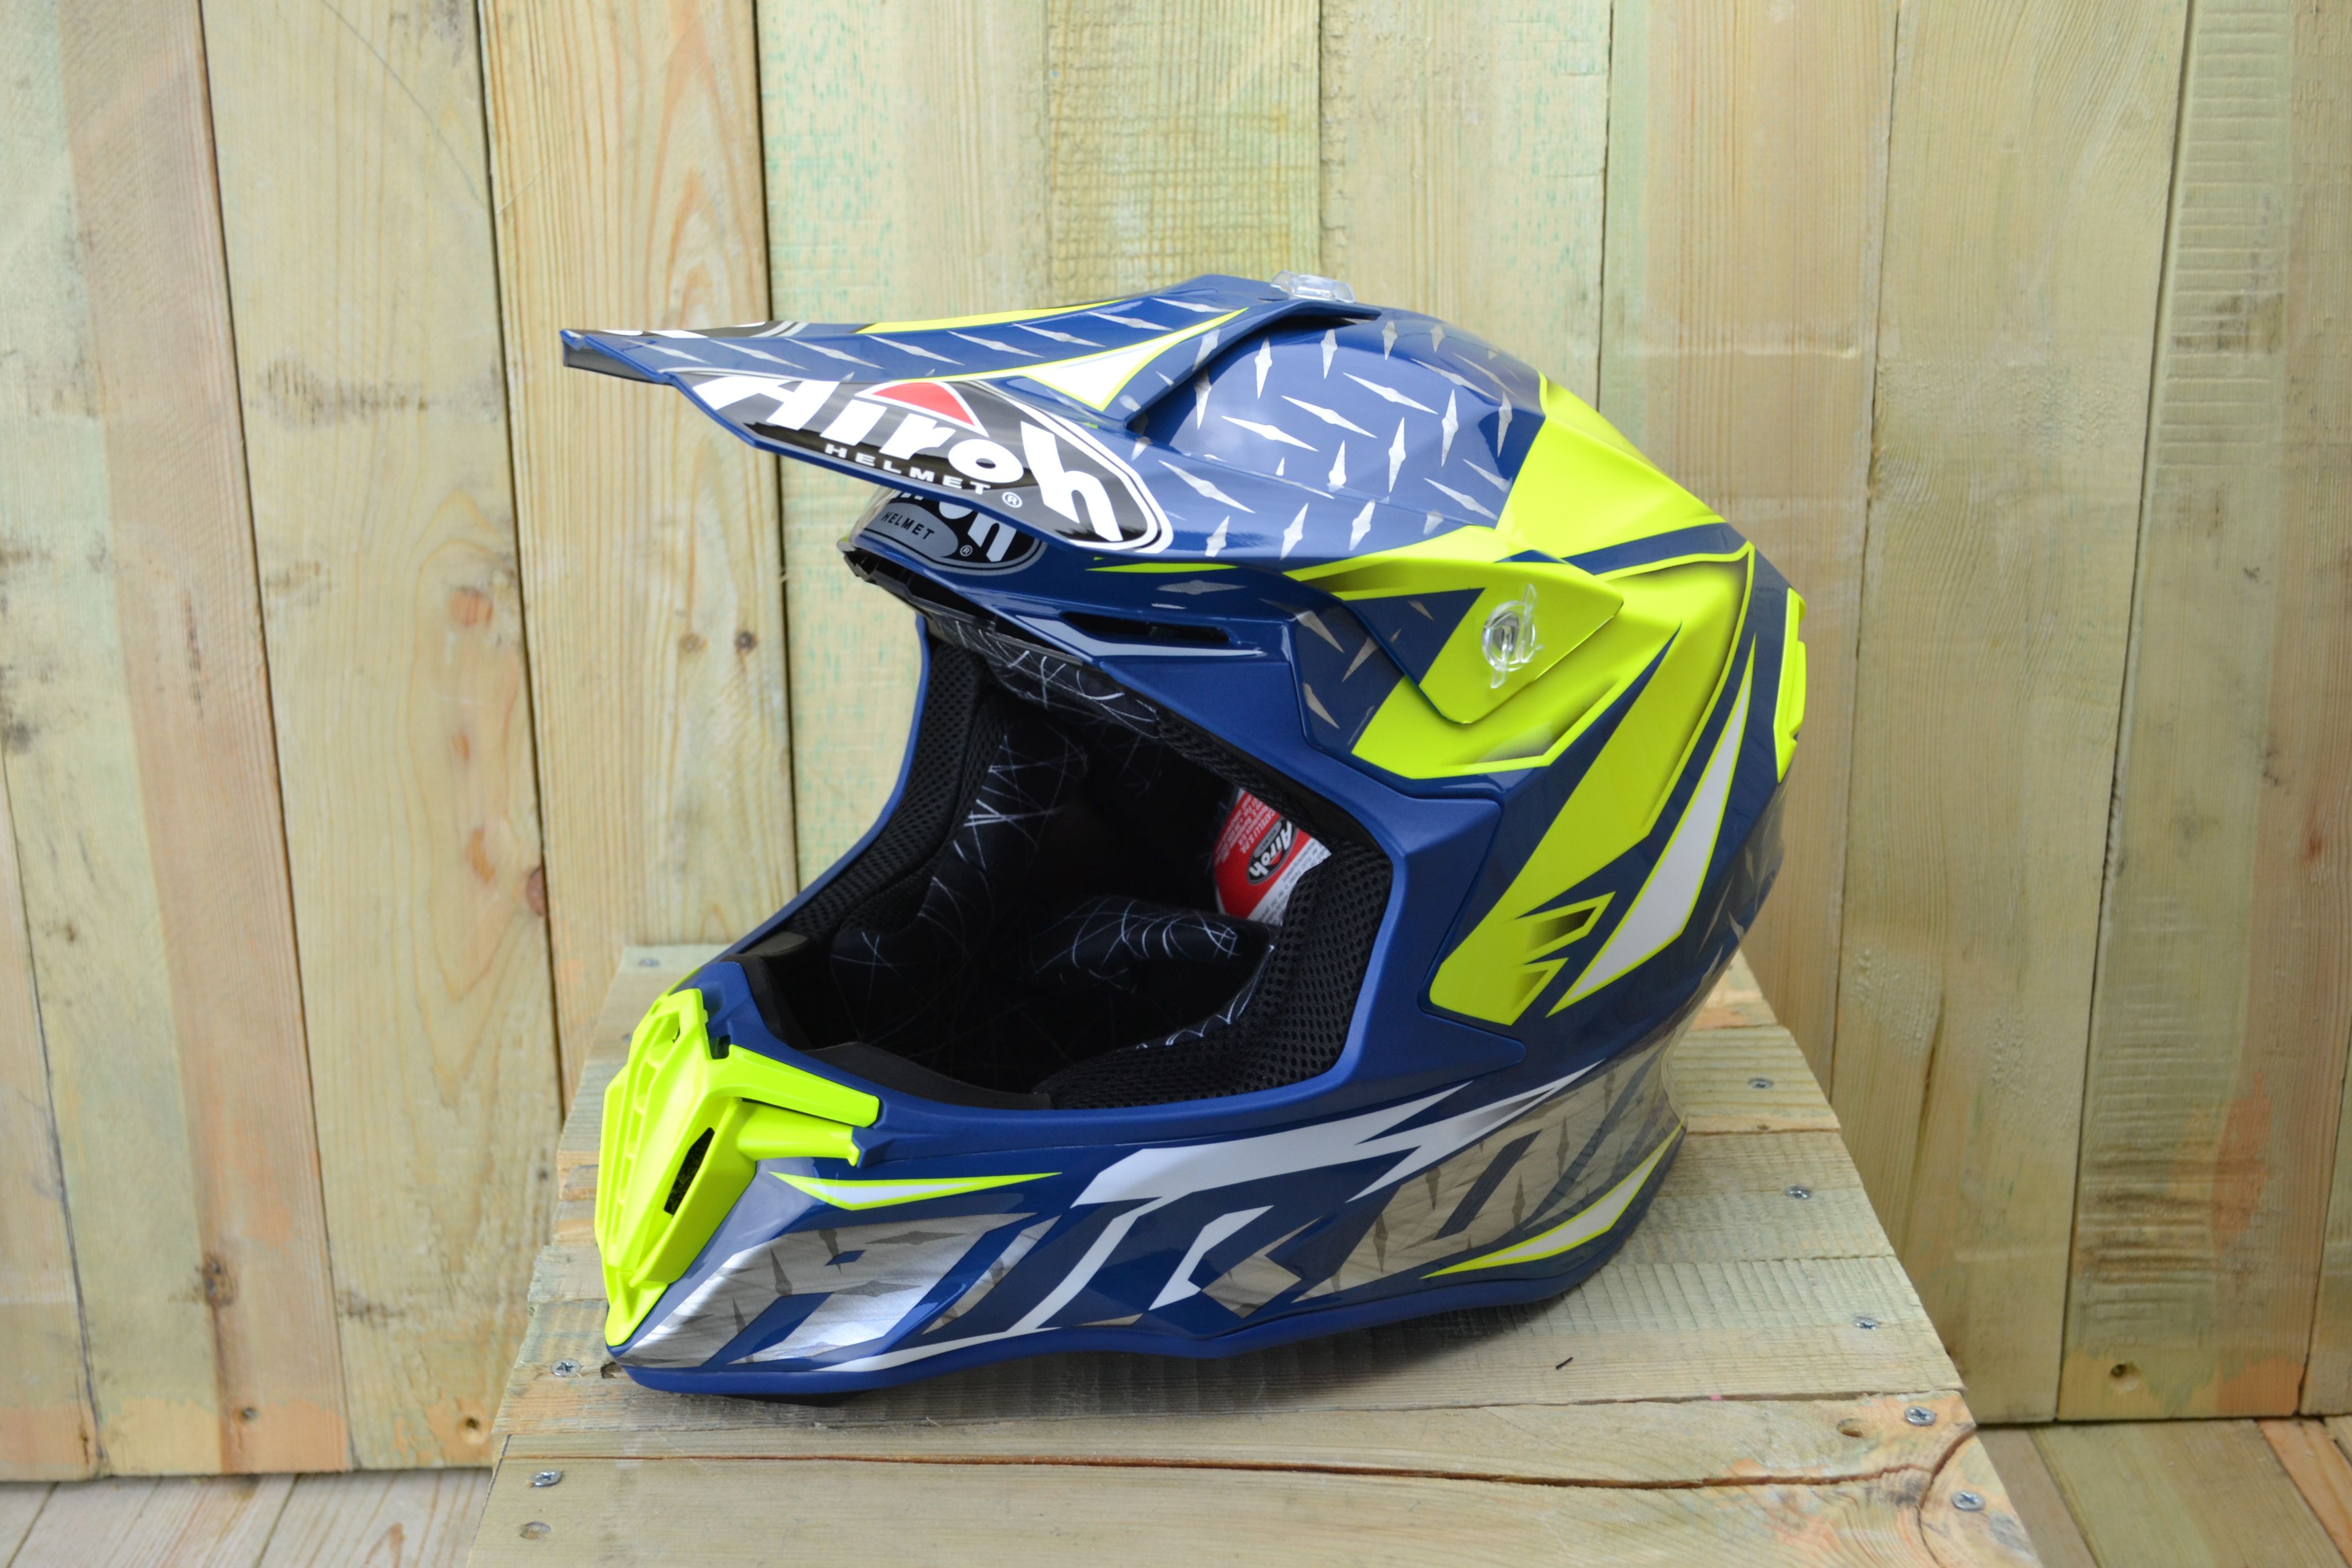 50227dcc The all new 2018 Airoh Twist is the new thermoplastic helmet developed for  the most demanding